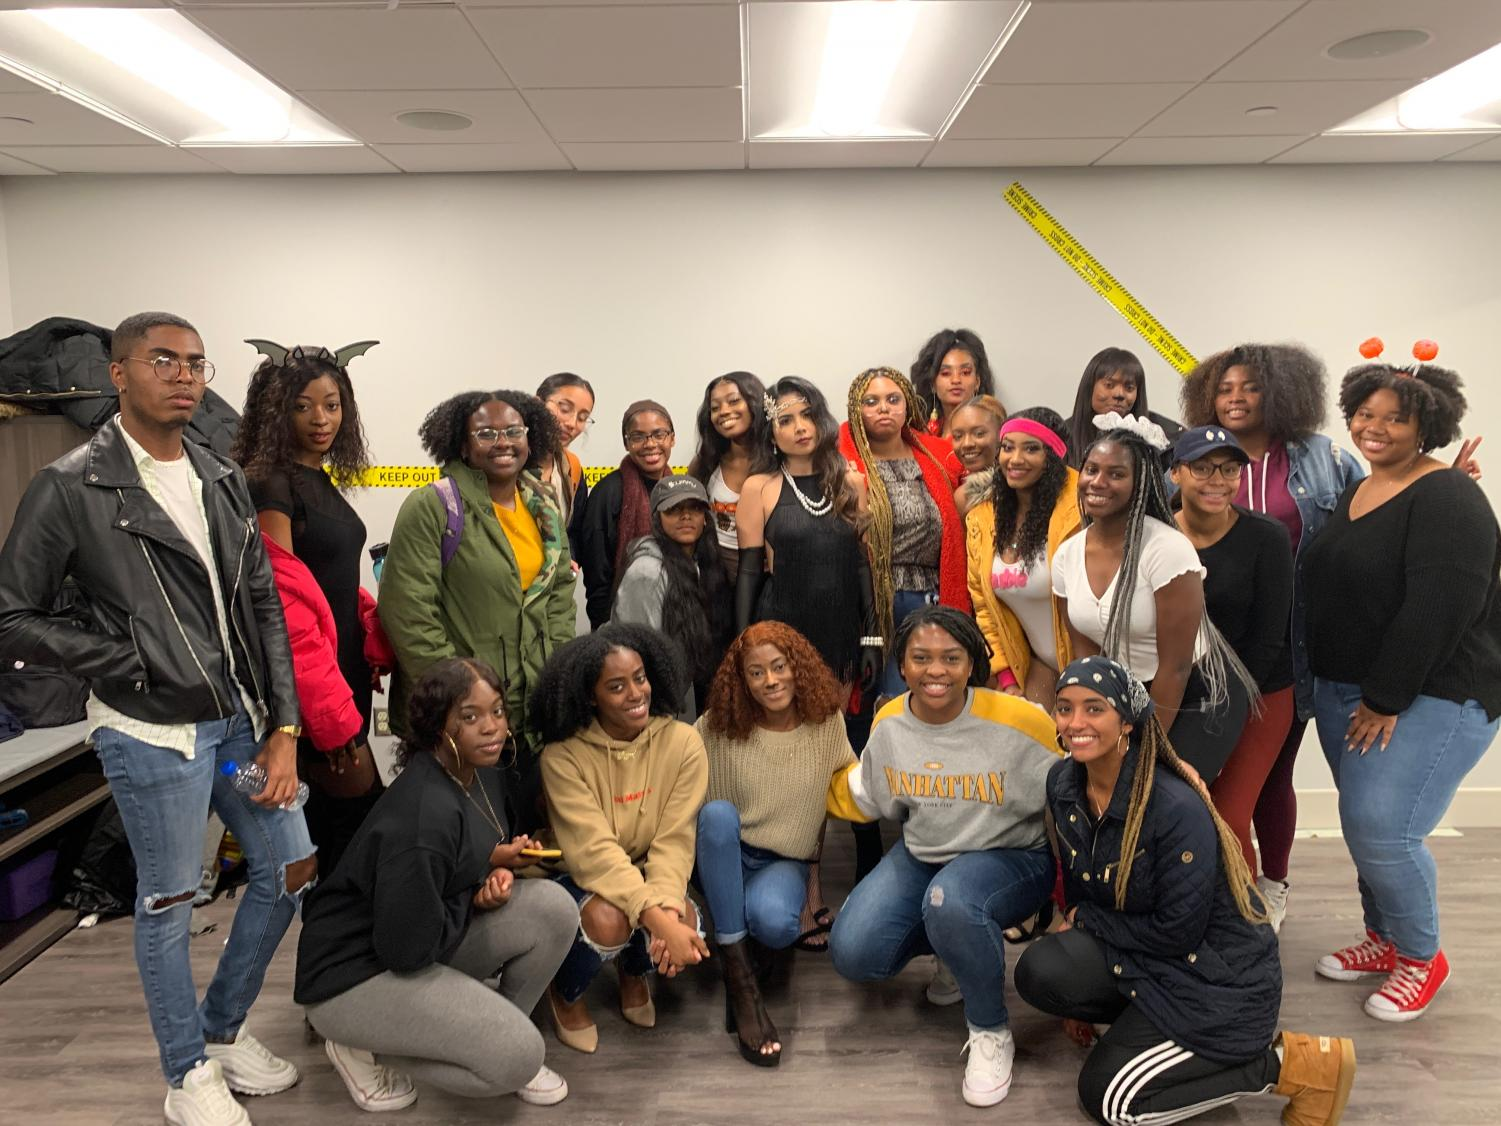 Two student RSOs, The Kat Walk and Living in Color, pose for a photo at the Bruce D. Nesbitt African American Cultural Center on Oct. 30.  The Kat Walk's debut fashion show will take place in the spring.